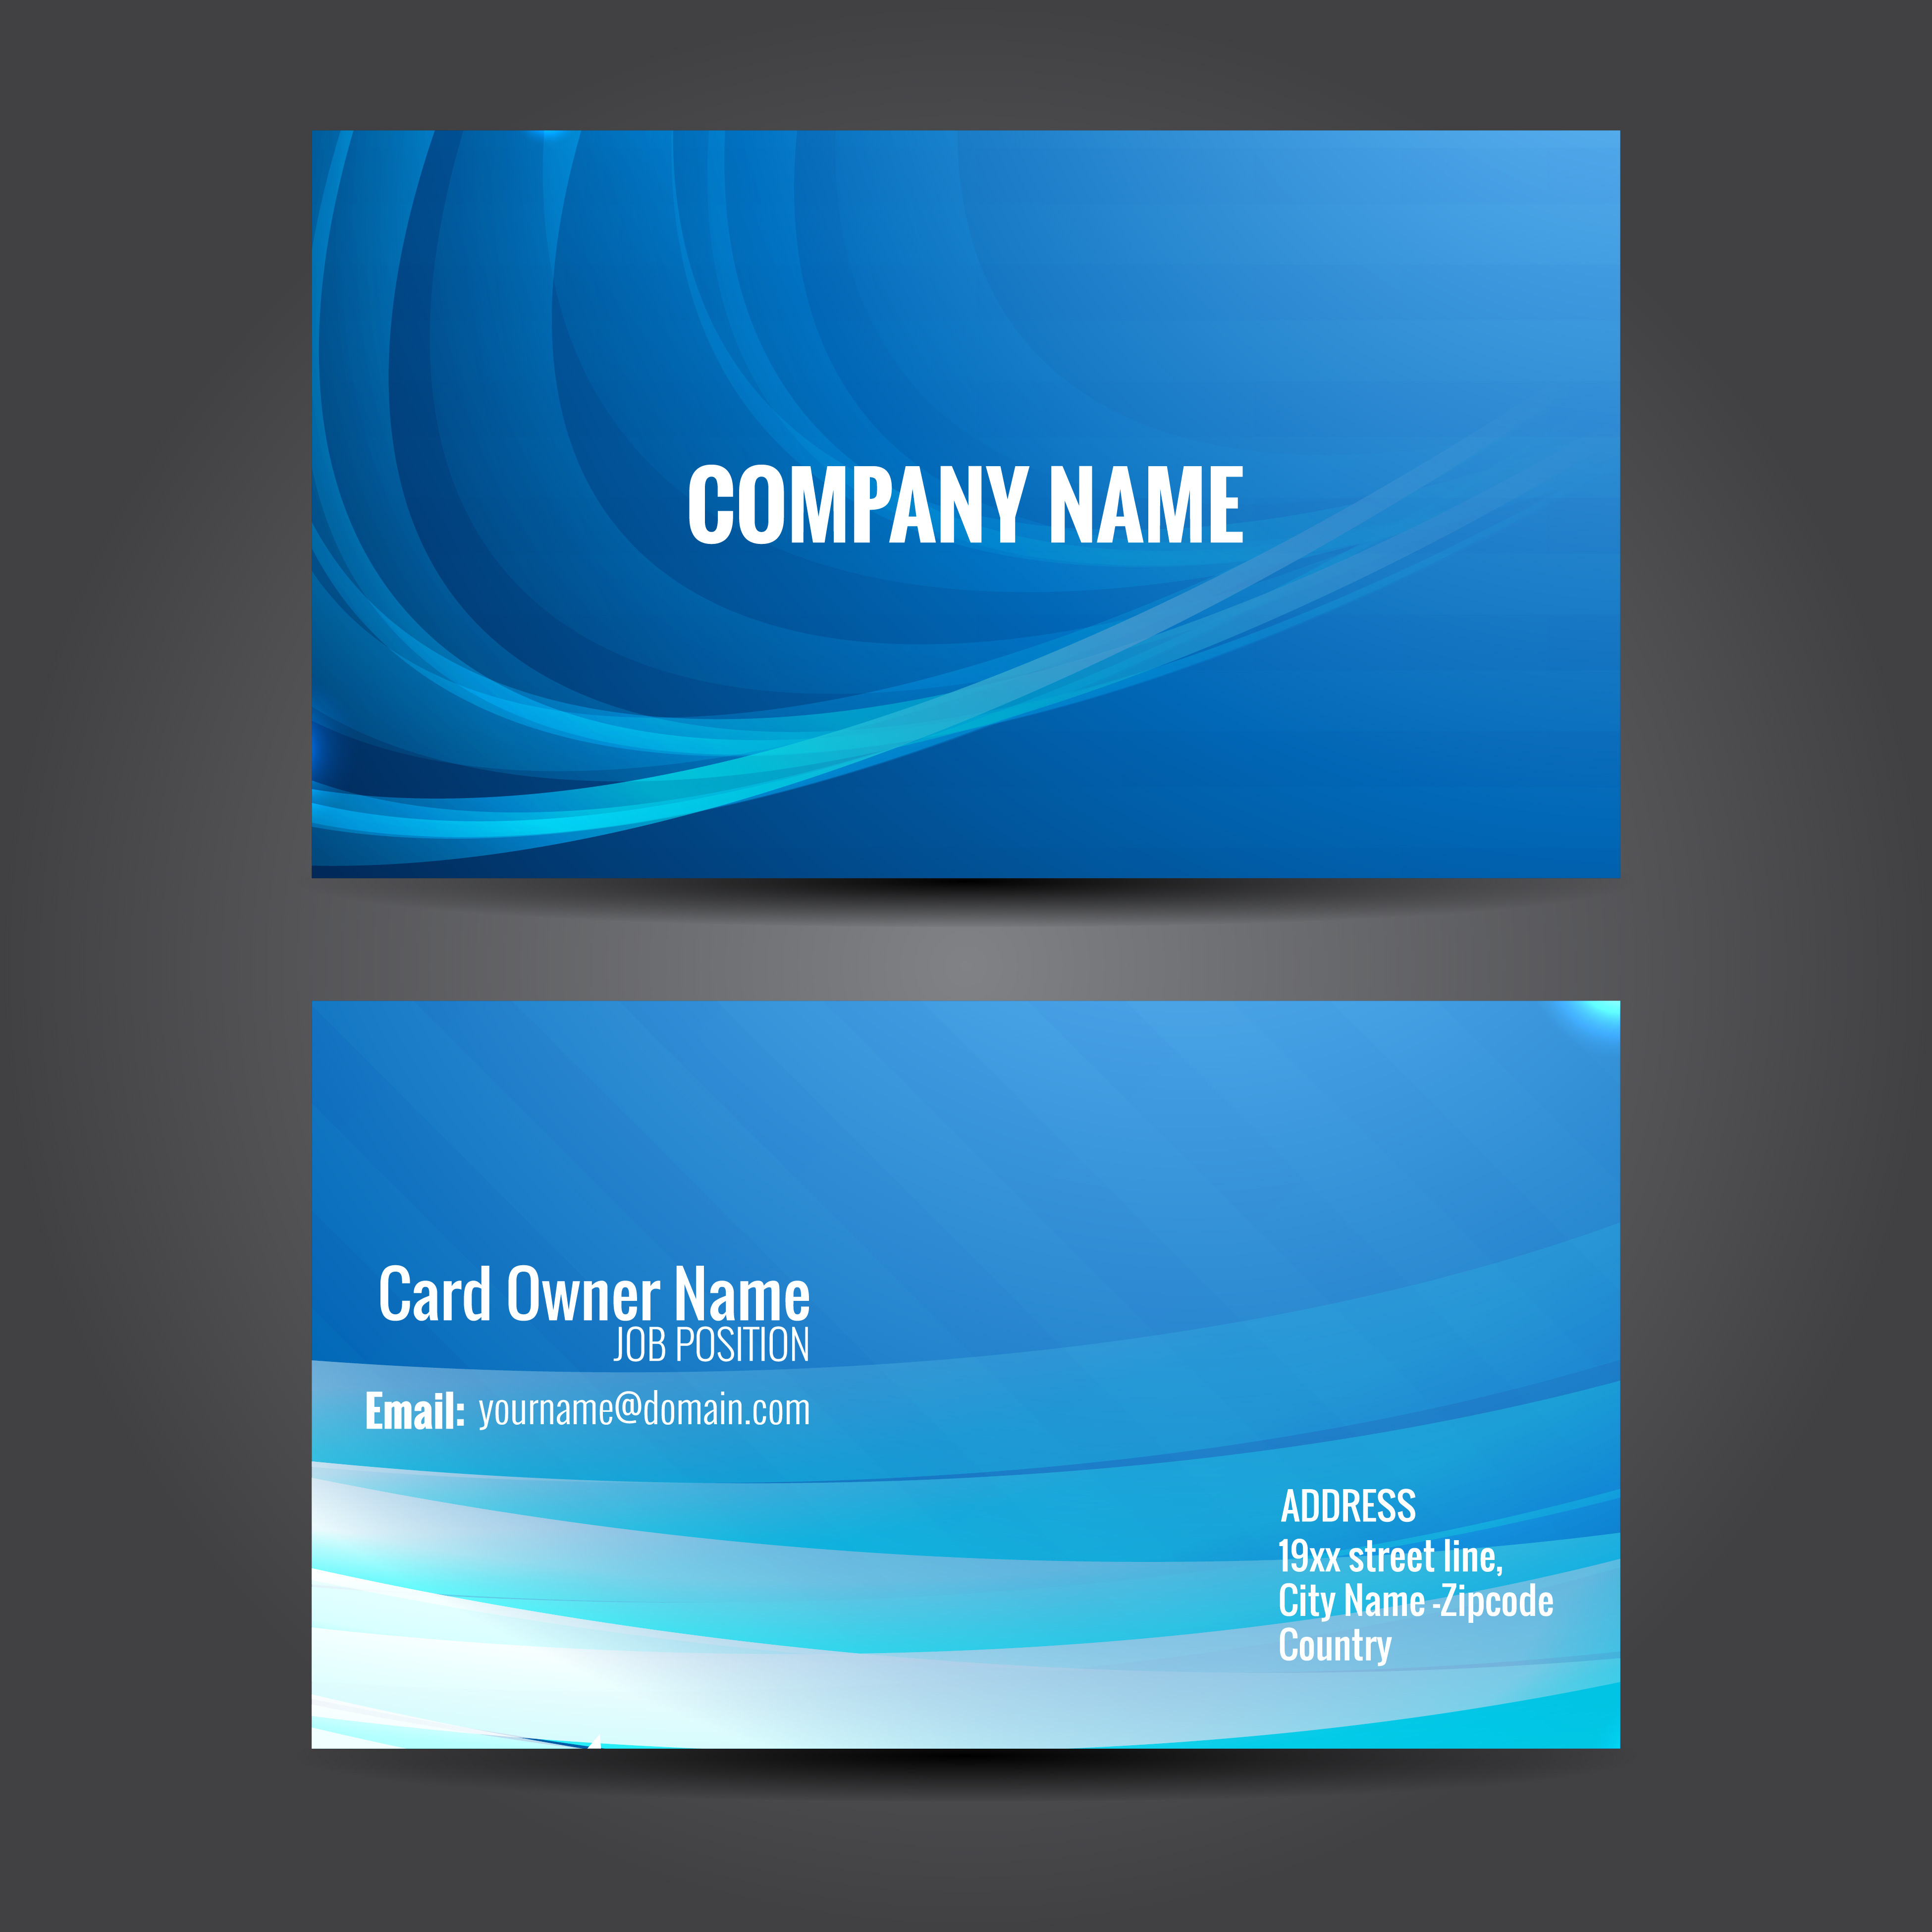 Free vector business card templates 41286 free downloads wajeb Images